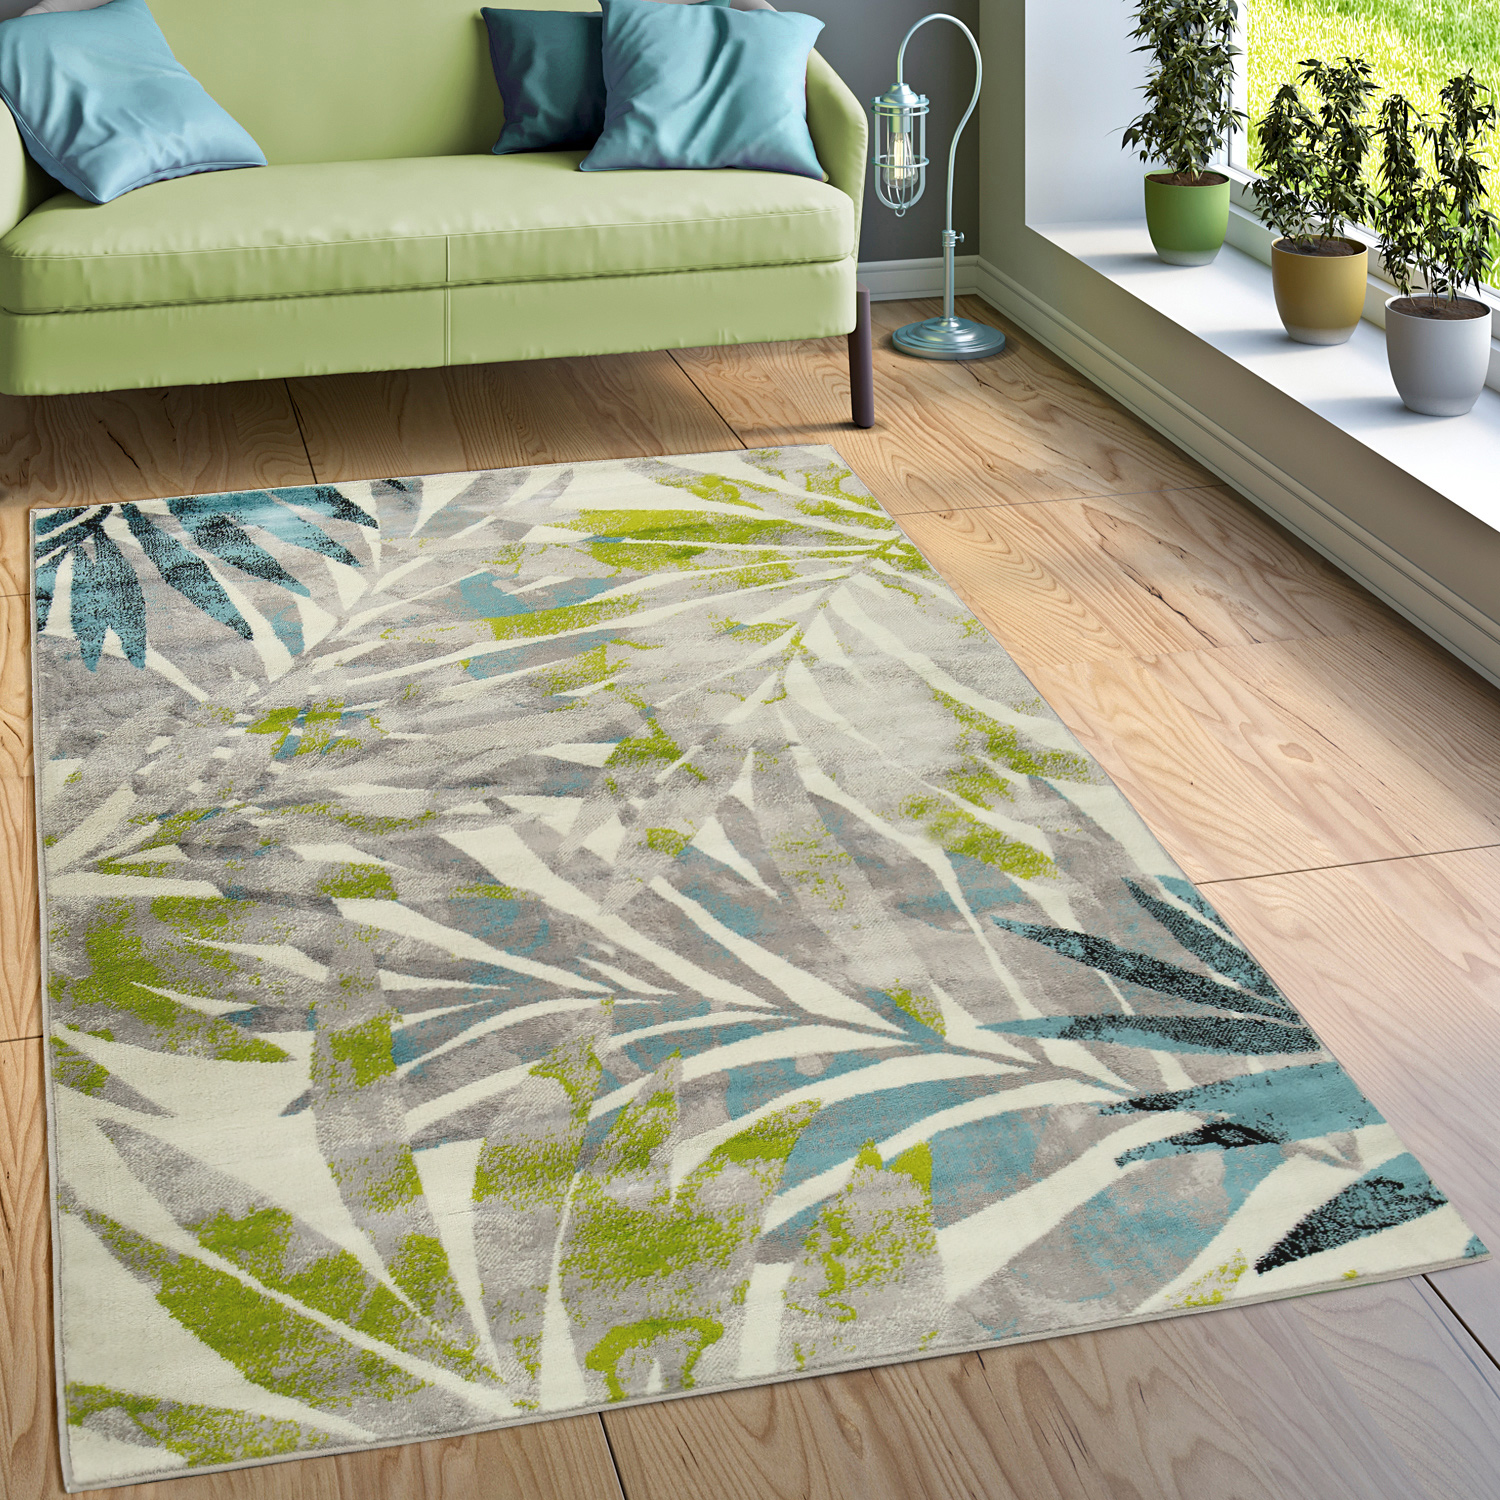 Designer Rug Living Room Unique Colour Combination Floral Multicolour